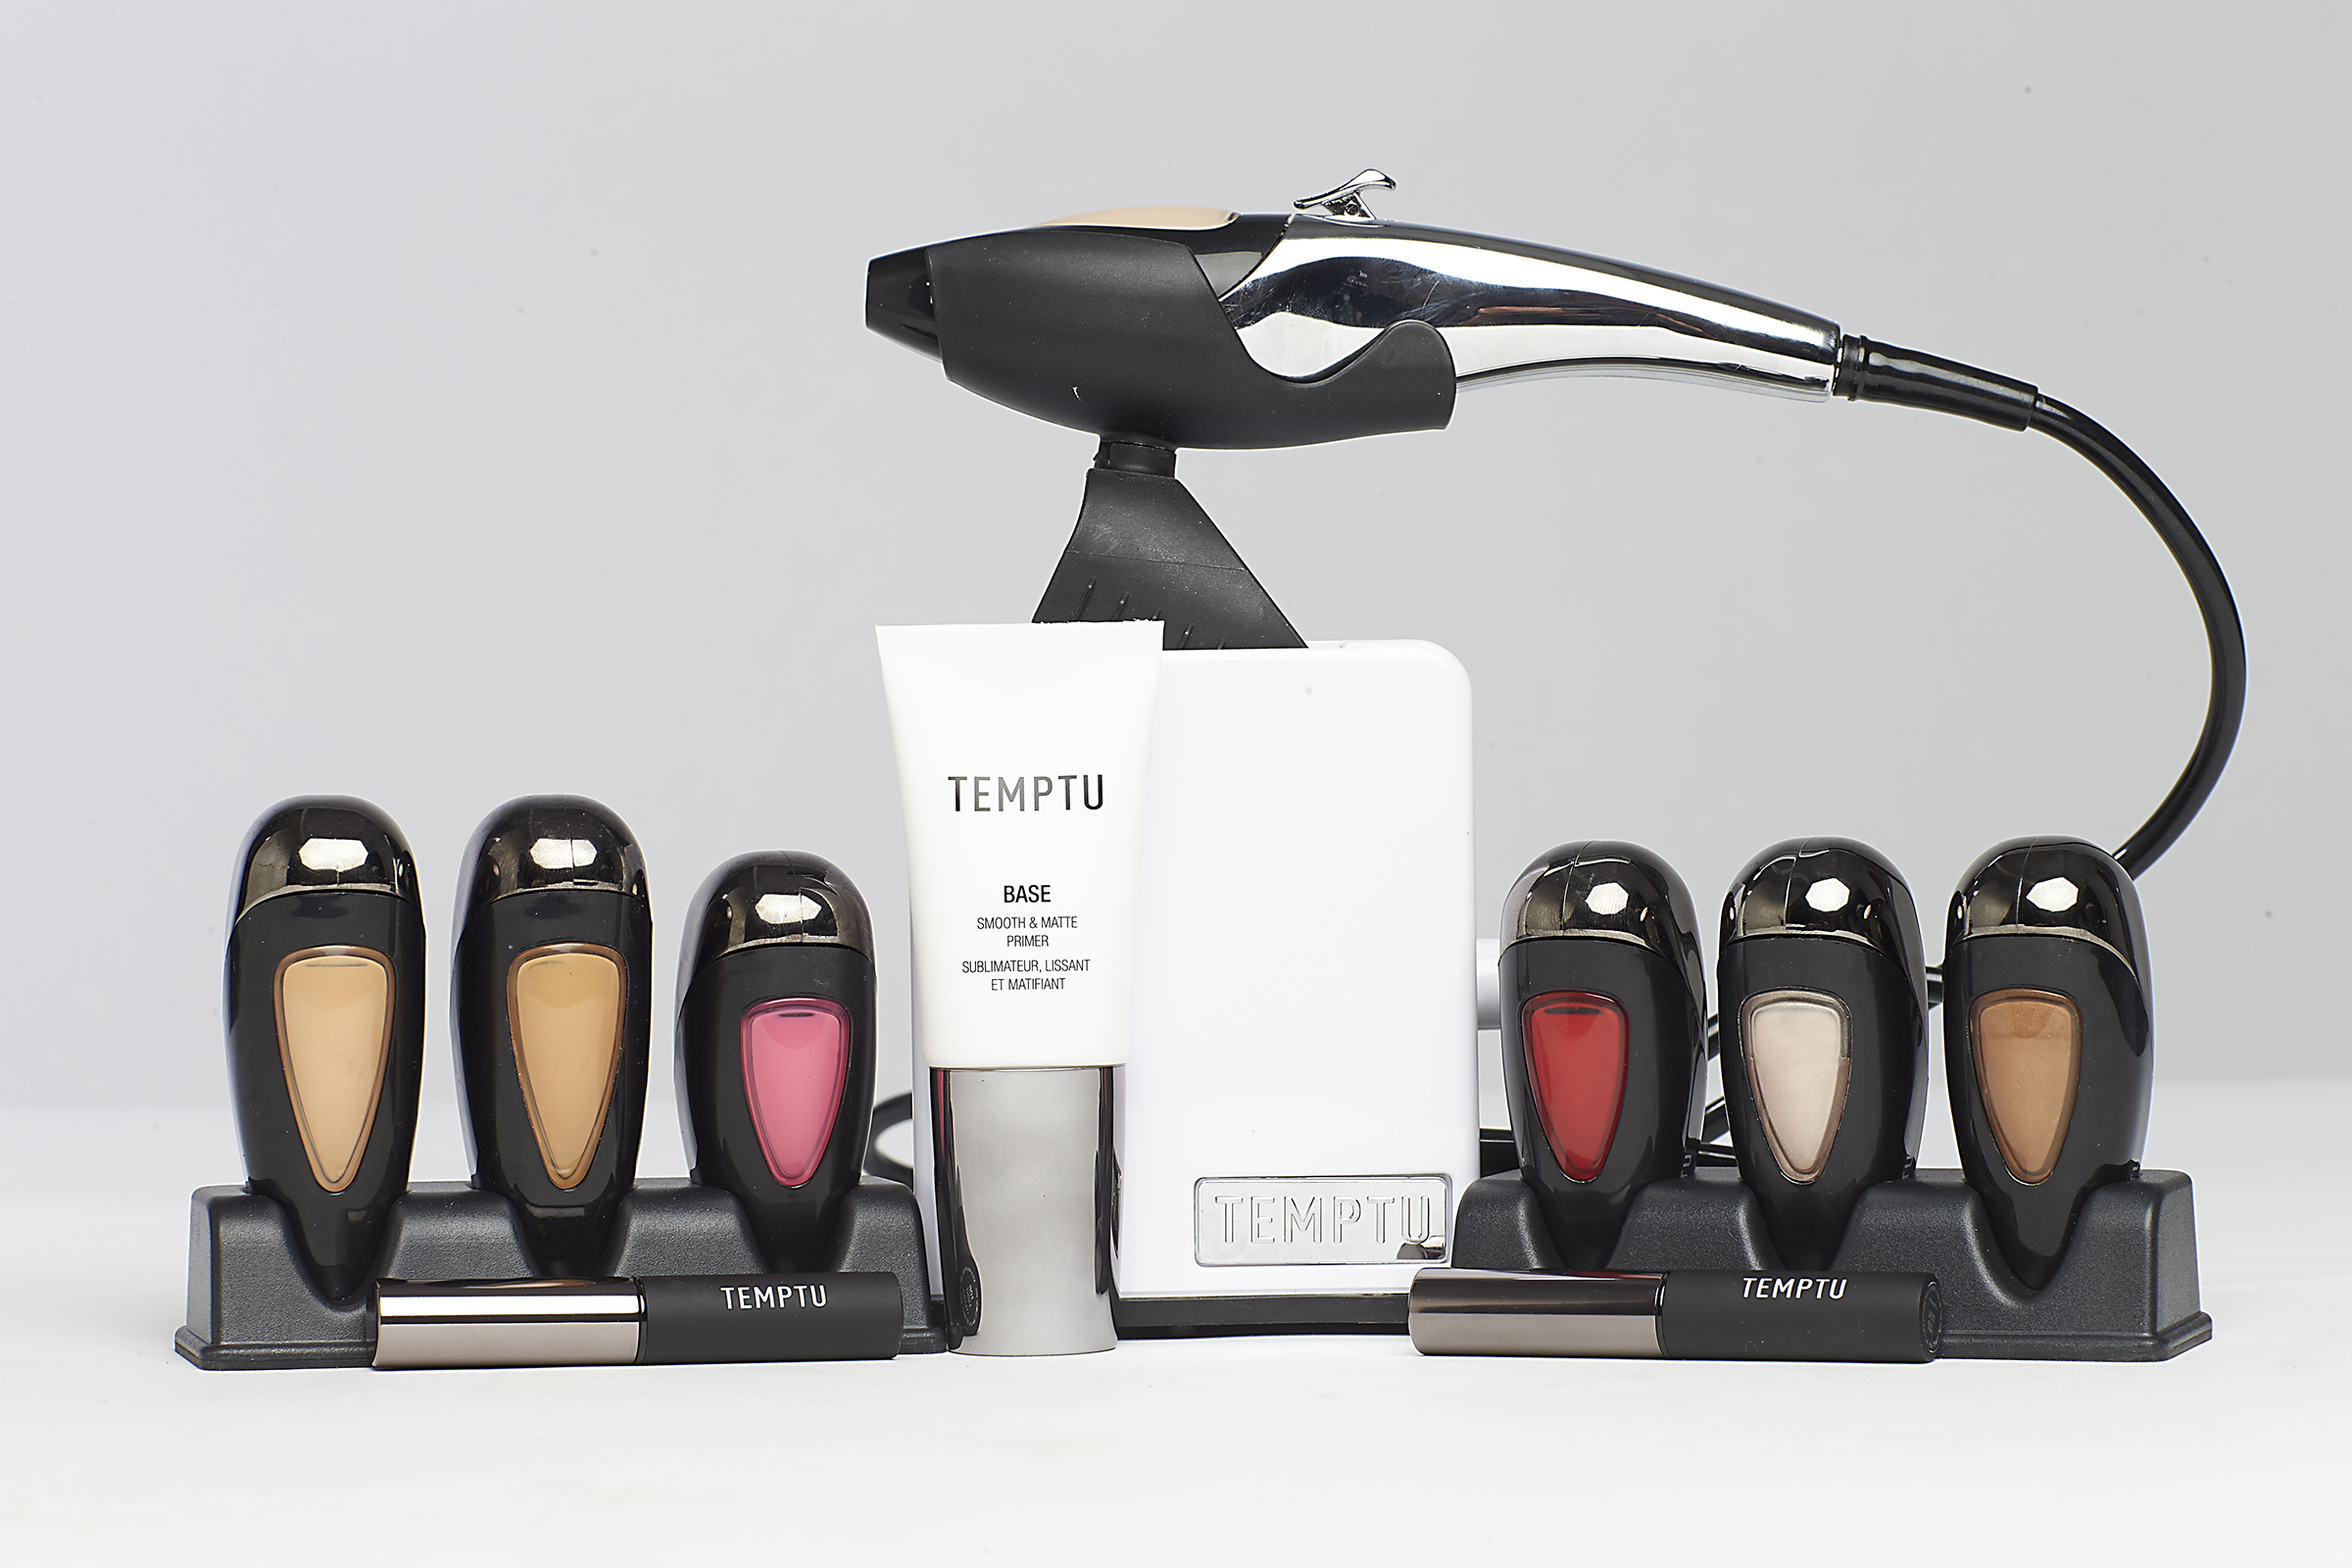 9. Airbrush Makeup System - Top 10 Beauty Gadgets